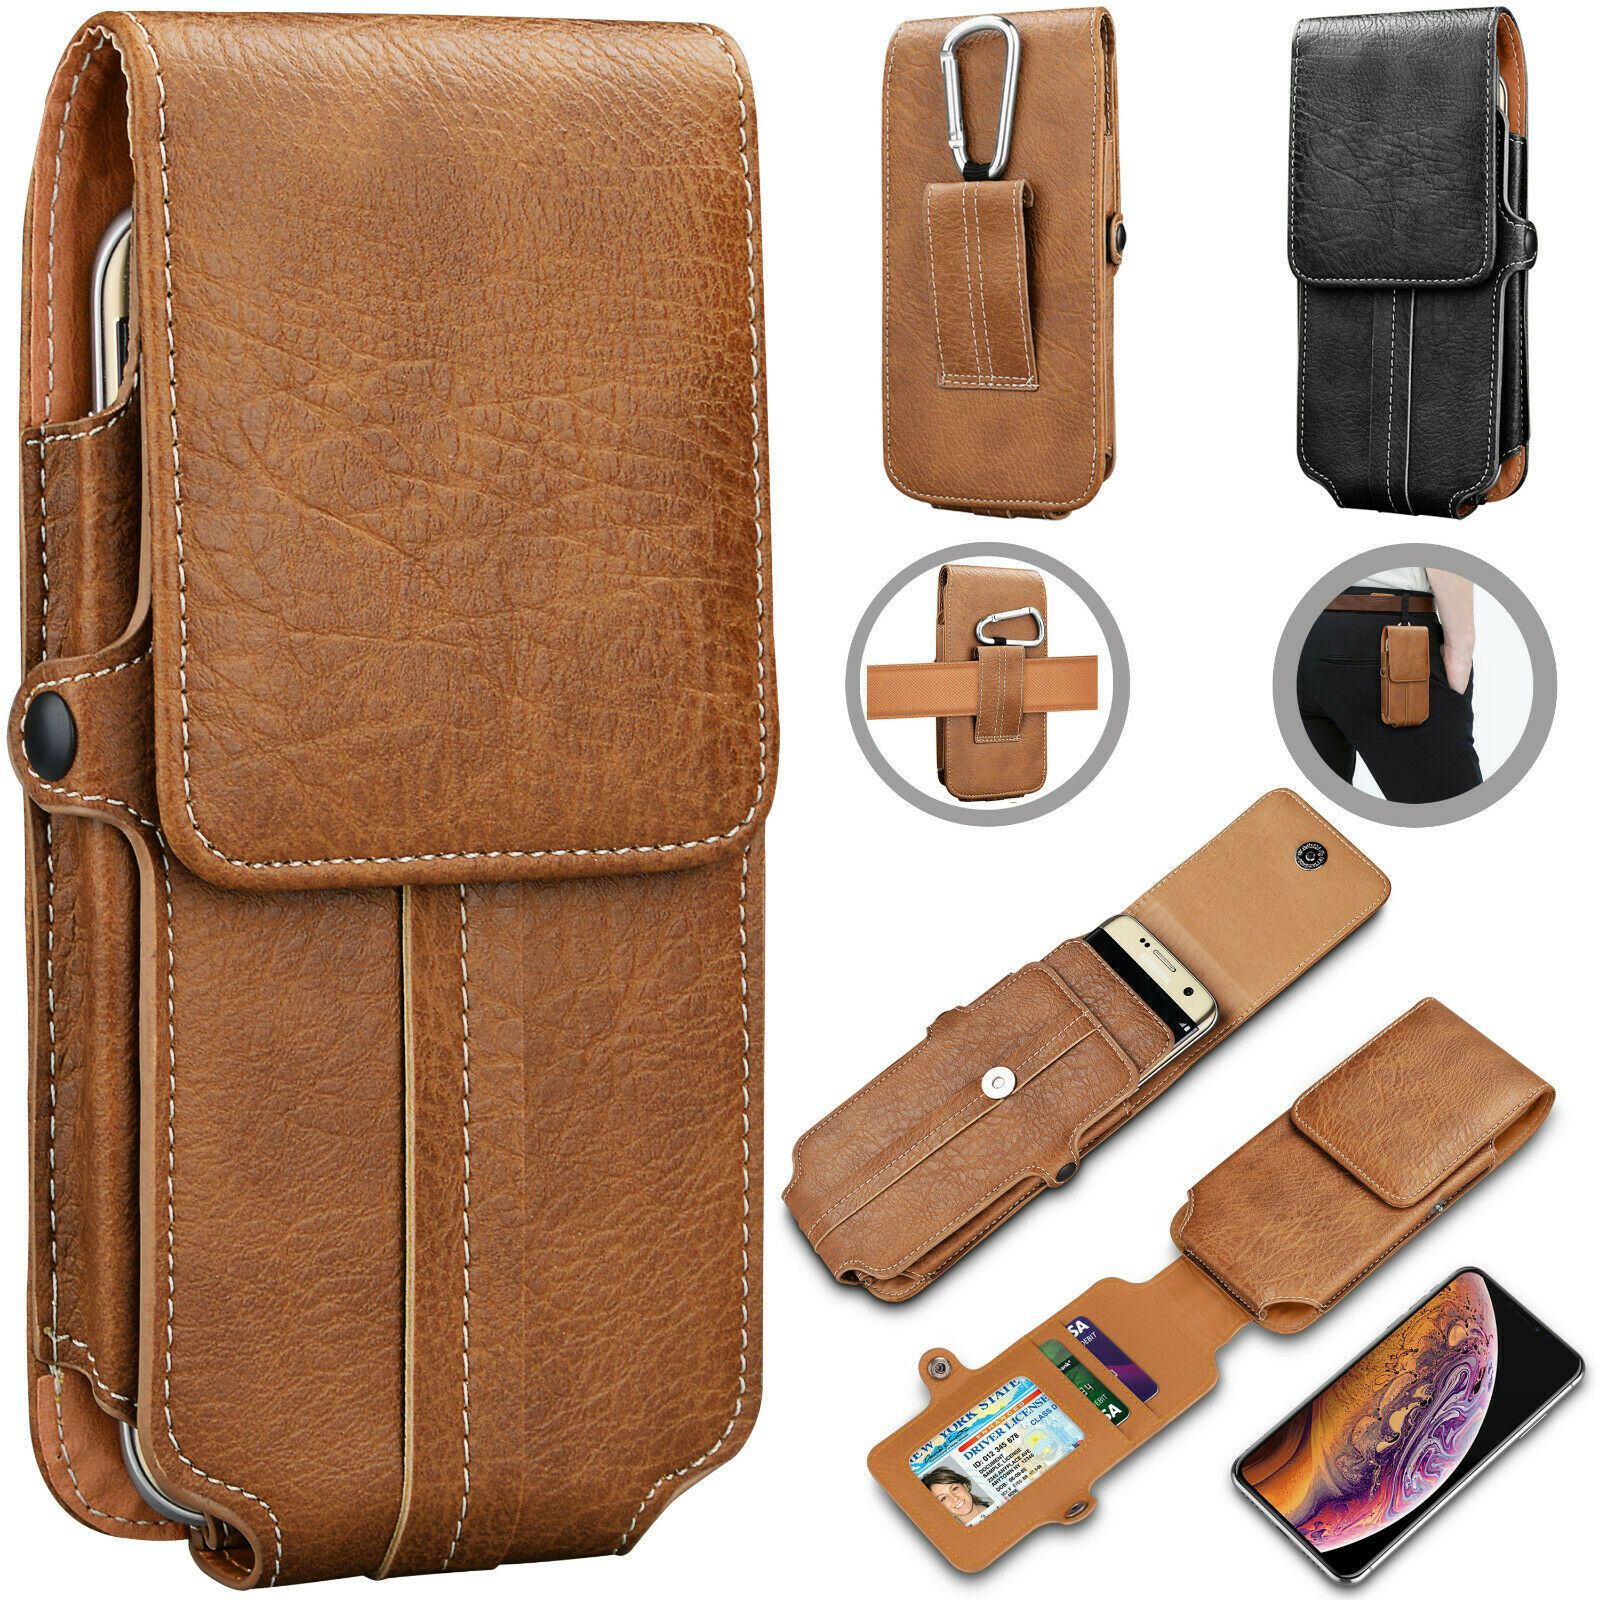 Details about vertical leather cell phone pouch card